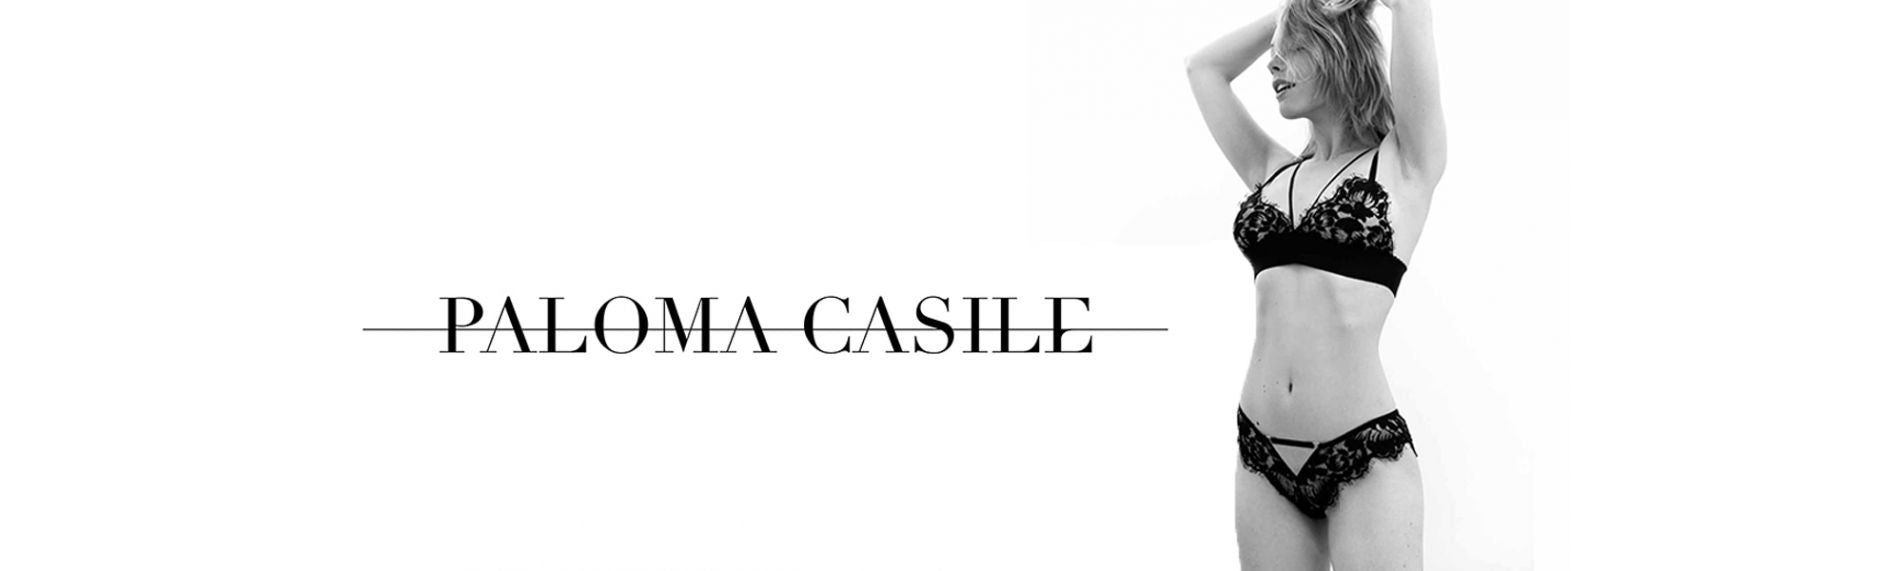 paloma casile lingerie collection